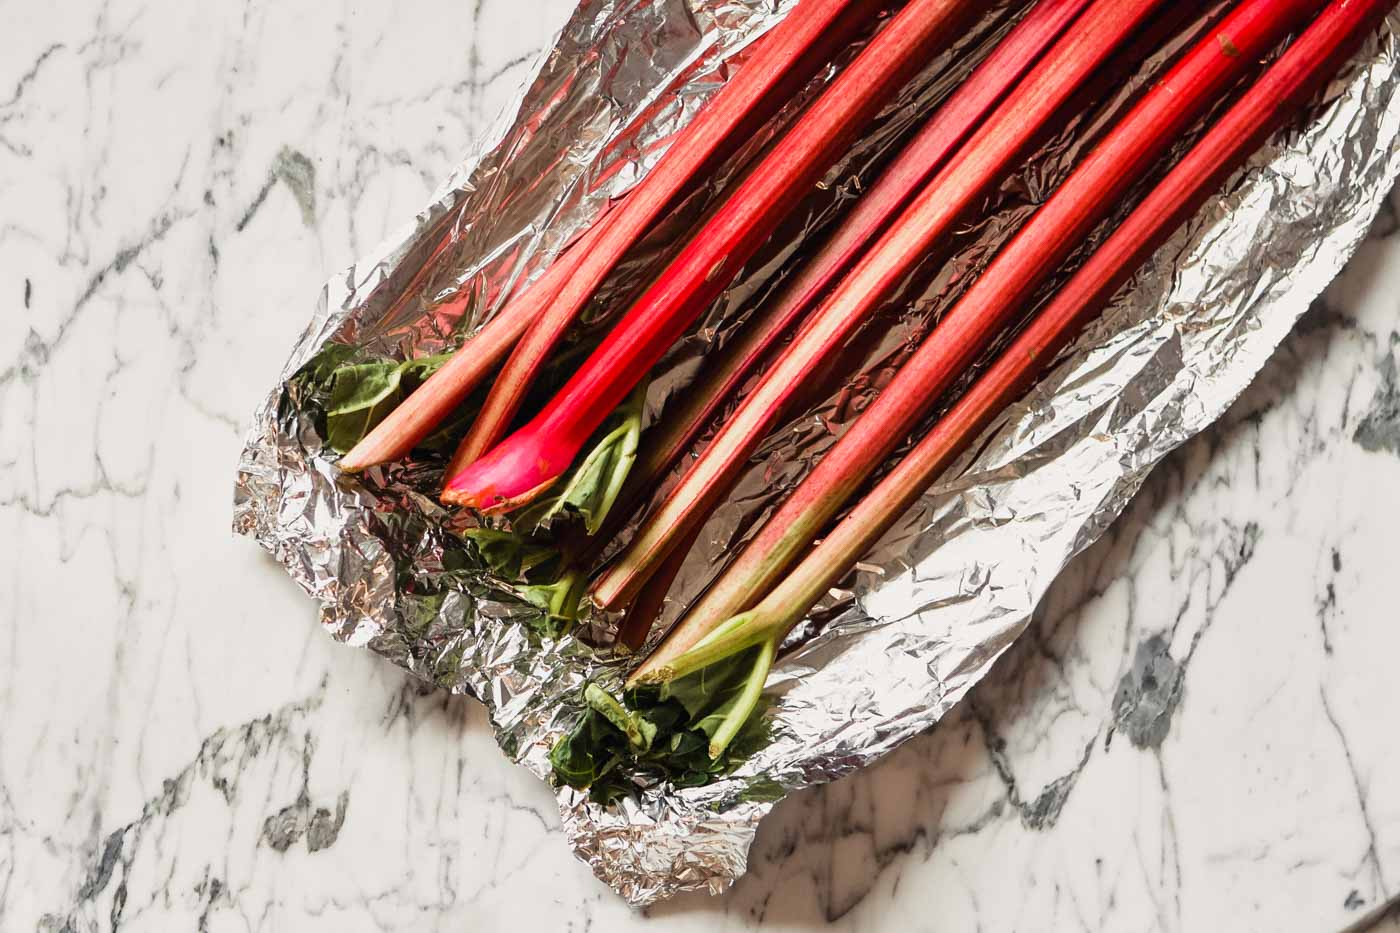 Photograph of stalks of rhubarb set in a piece of foil